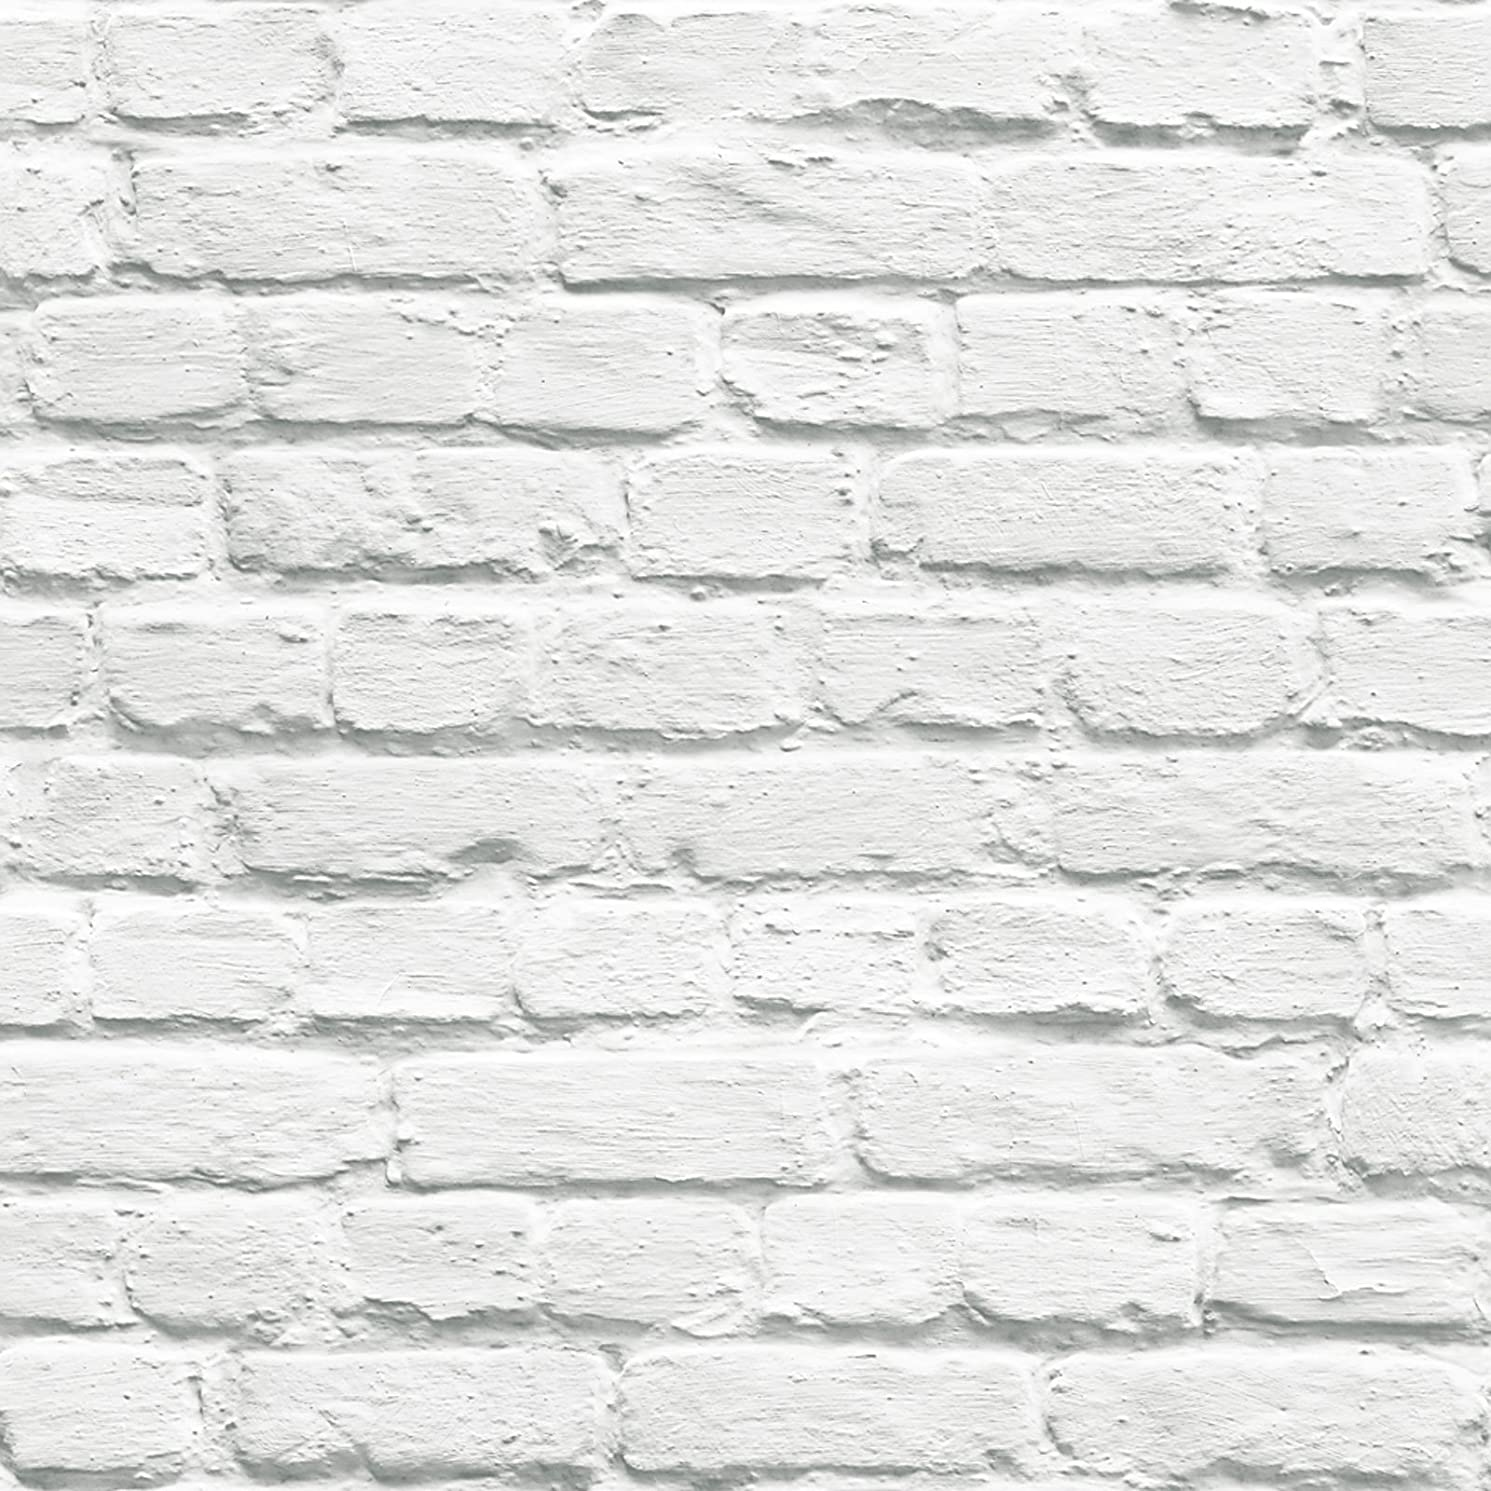 102539 - Novelties Painted White Brick White painted Brickwork Geometric Wallpaper